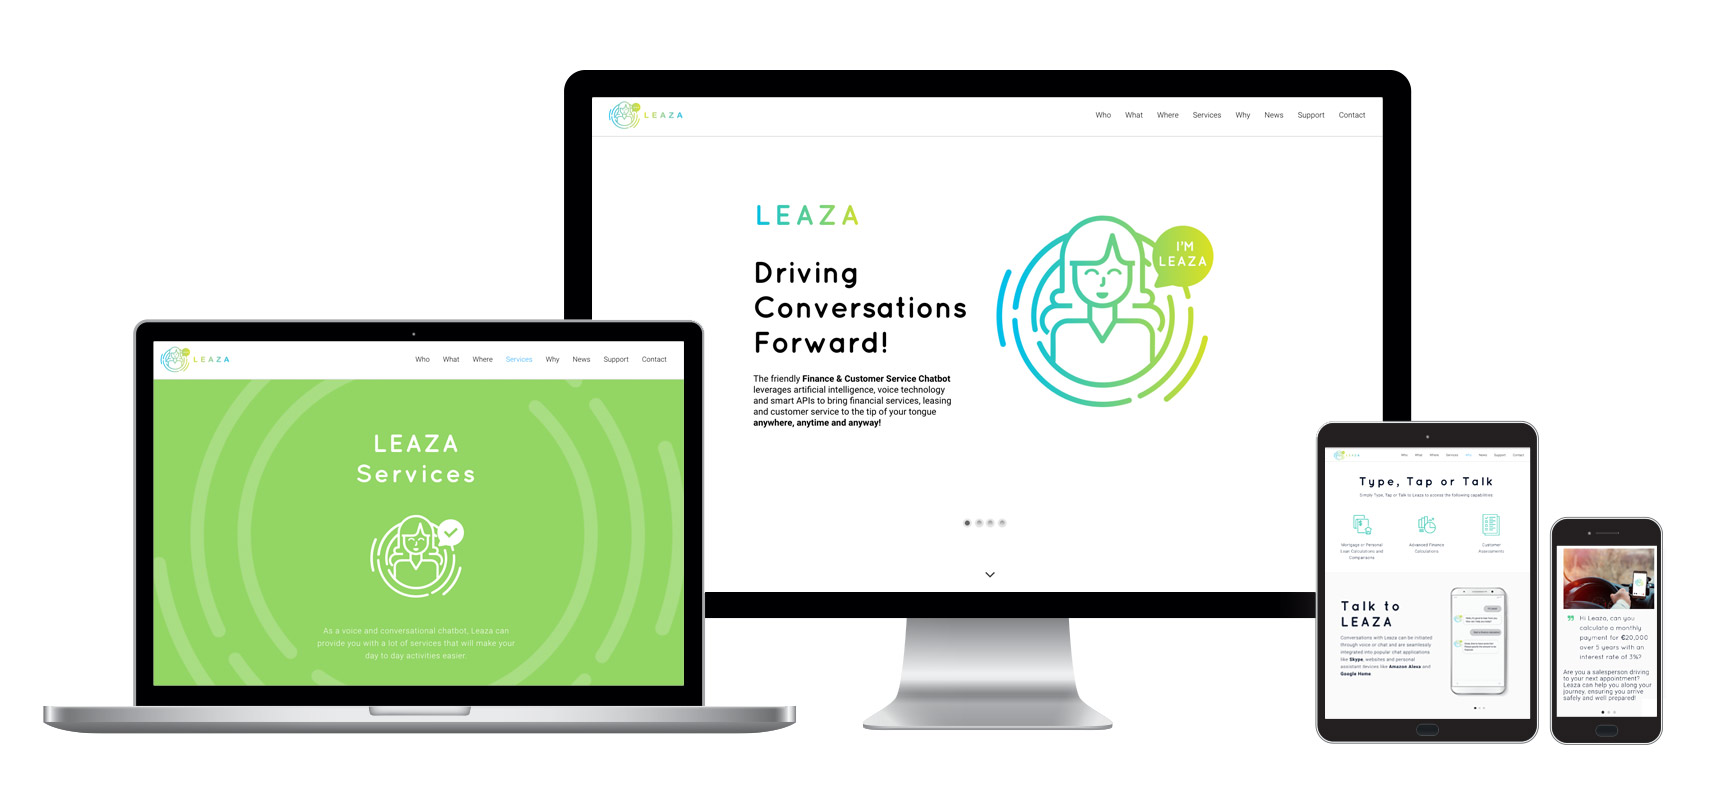 Web Design Ireland - Leaza